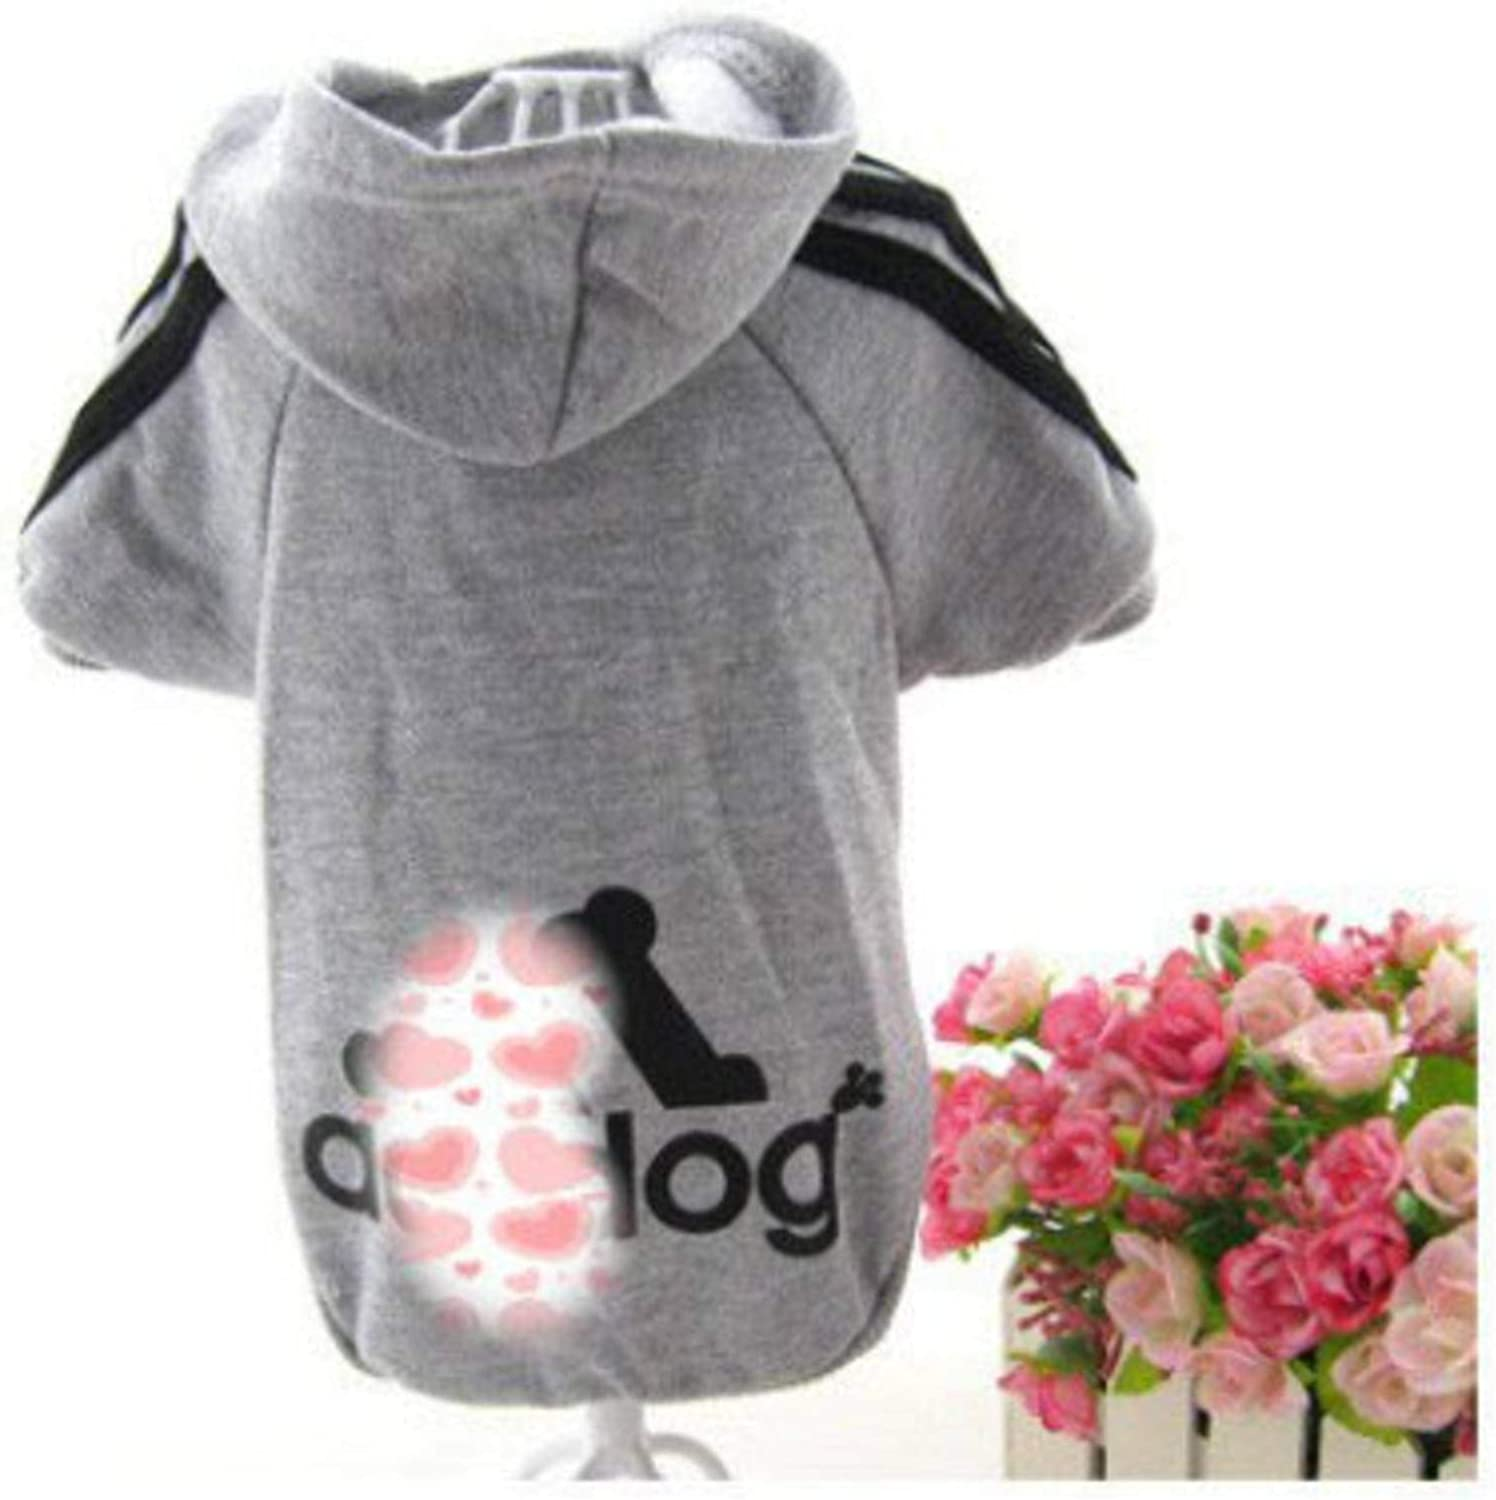 N\C Winter Warm Big Dog Sweater Clothes Coat Hooded In a 4 years warranty popularity